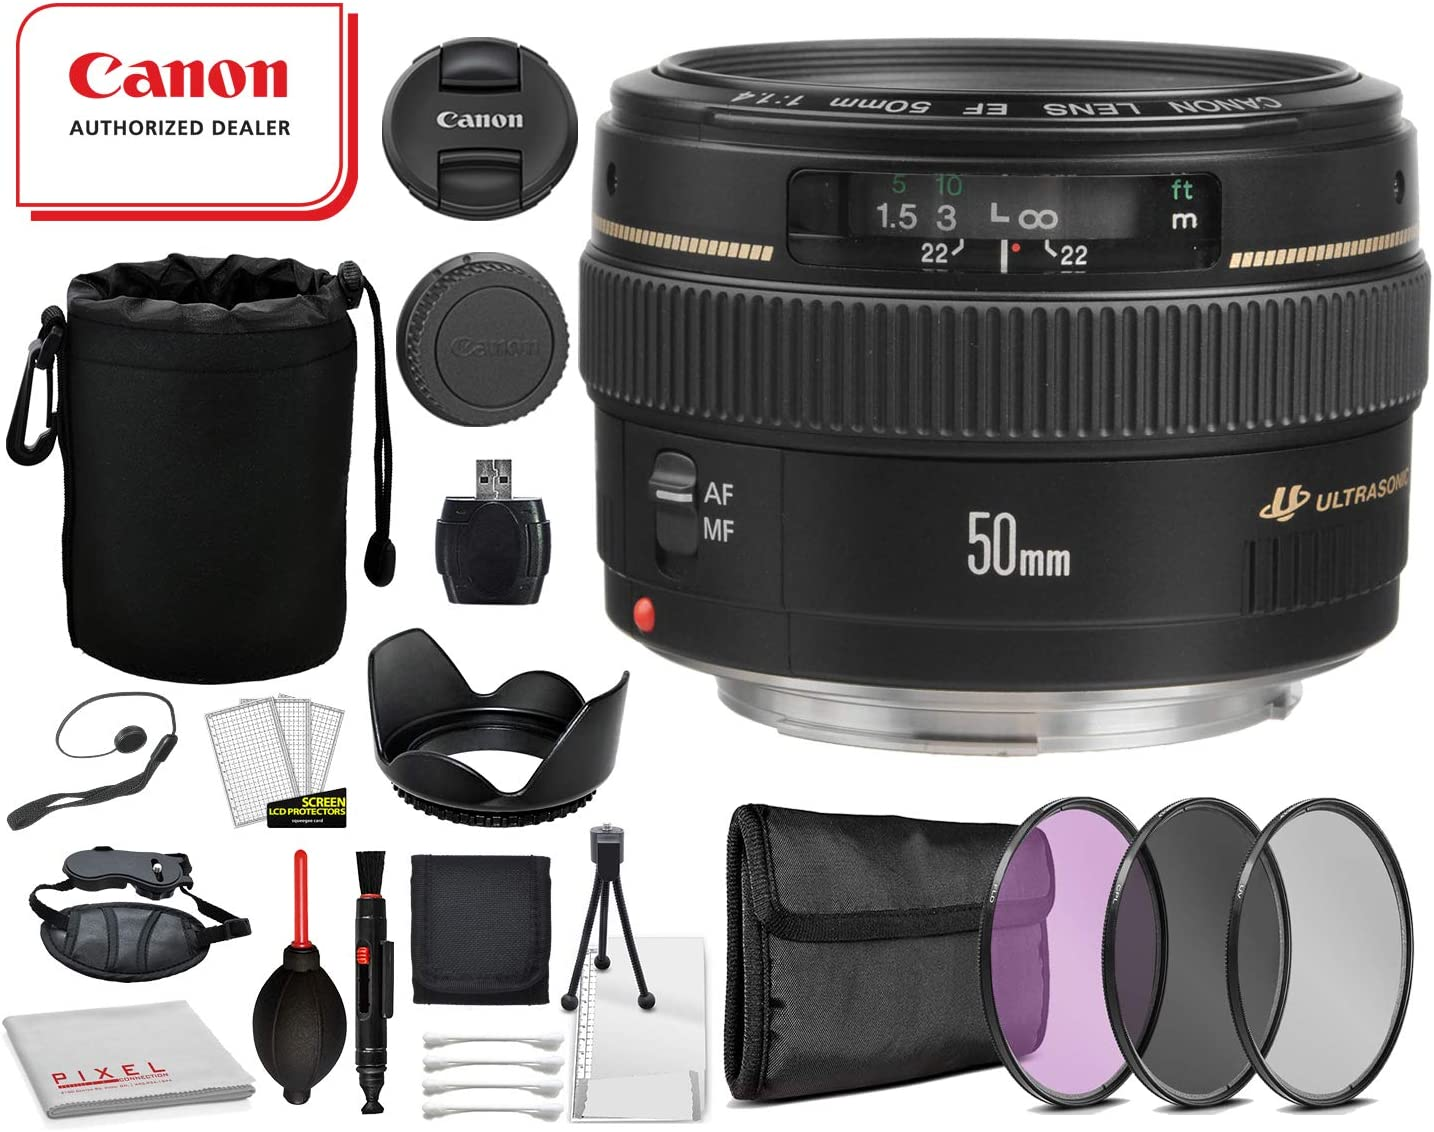 3PC Filter Kit 2515A003 More Canon EF 50mm f//1.4 USM Lens with Professional Bundle Package Deal Kit for Canon EOS Includes: Tulip Lens Hood Lens Pouch